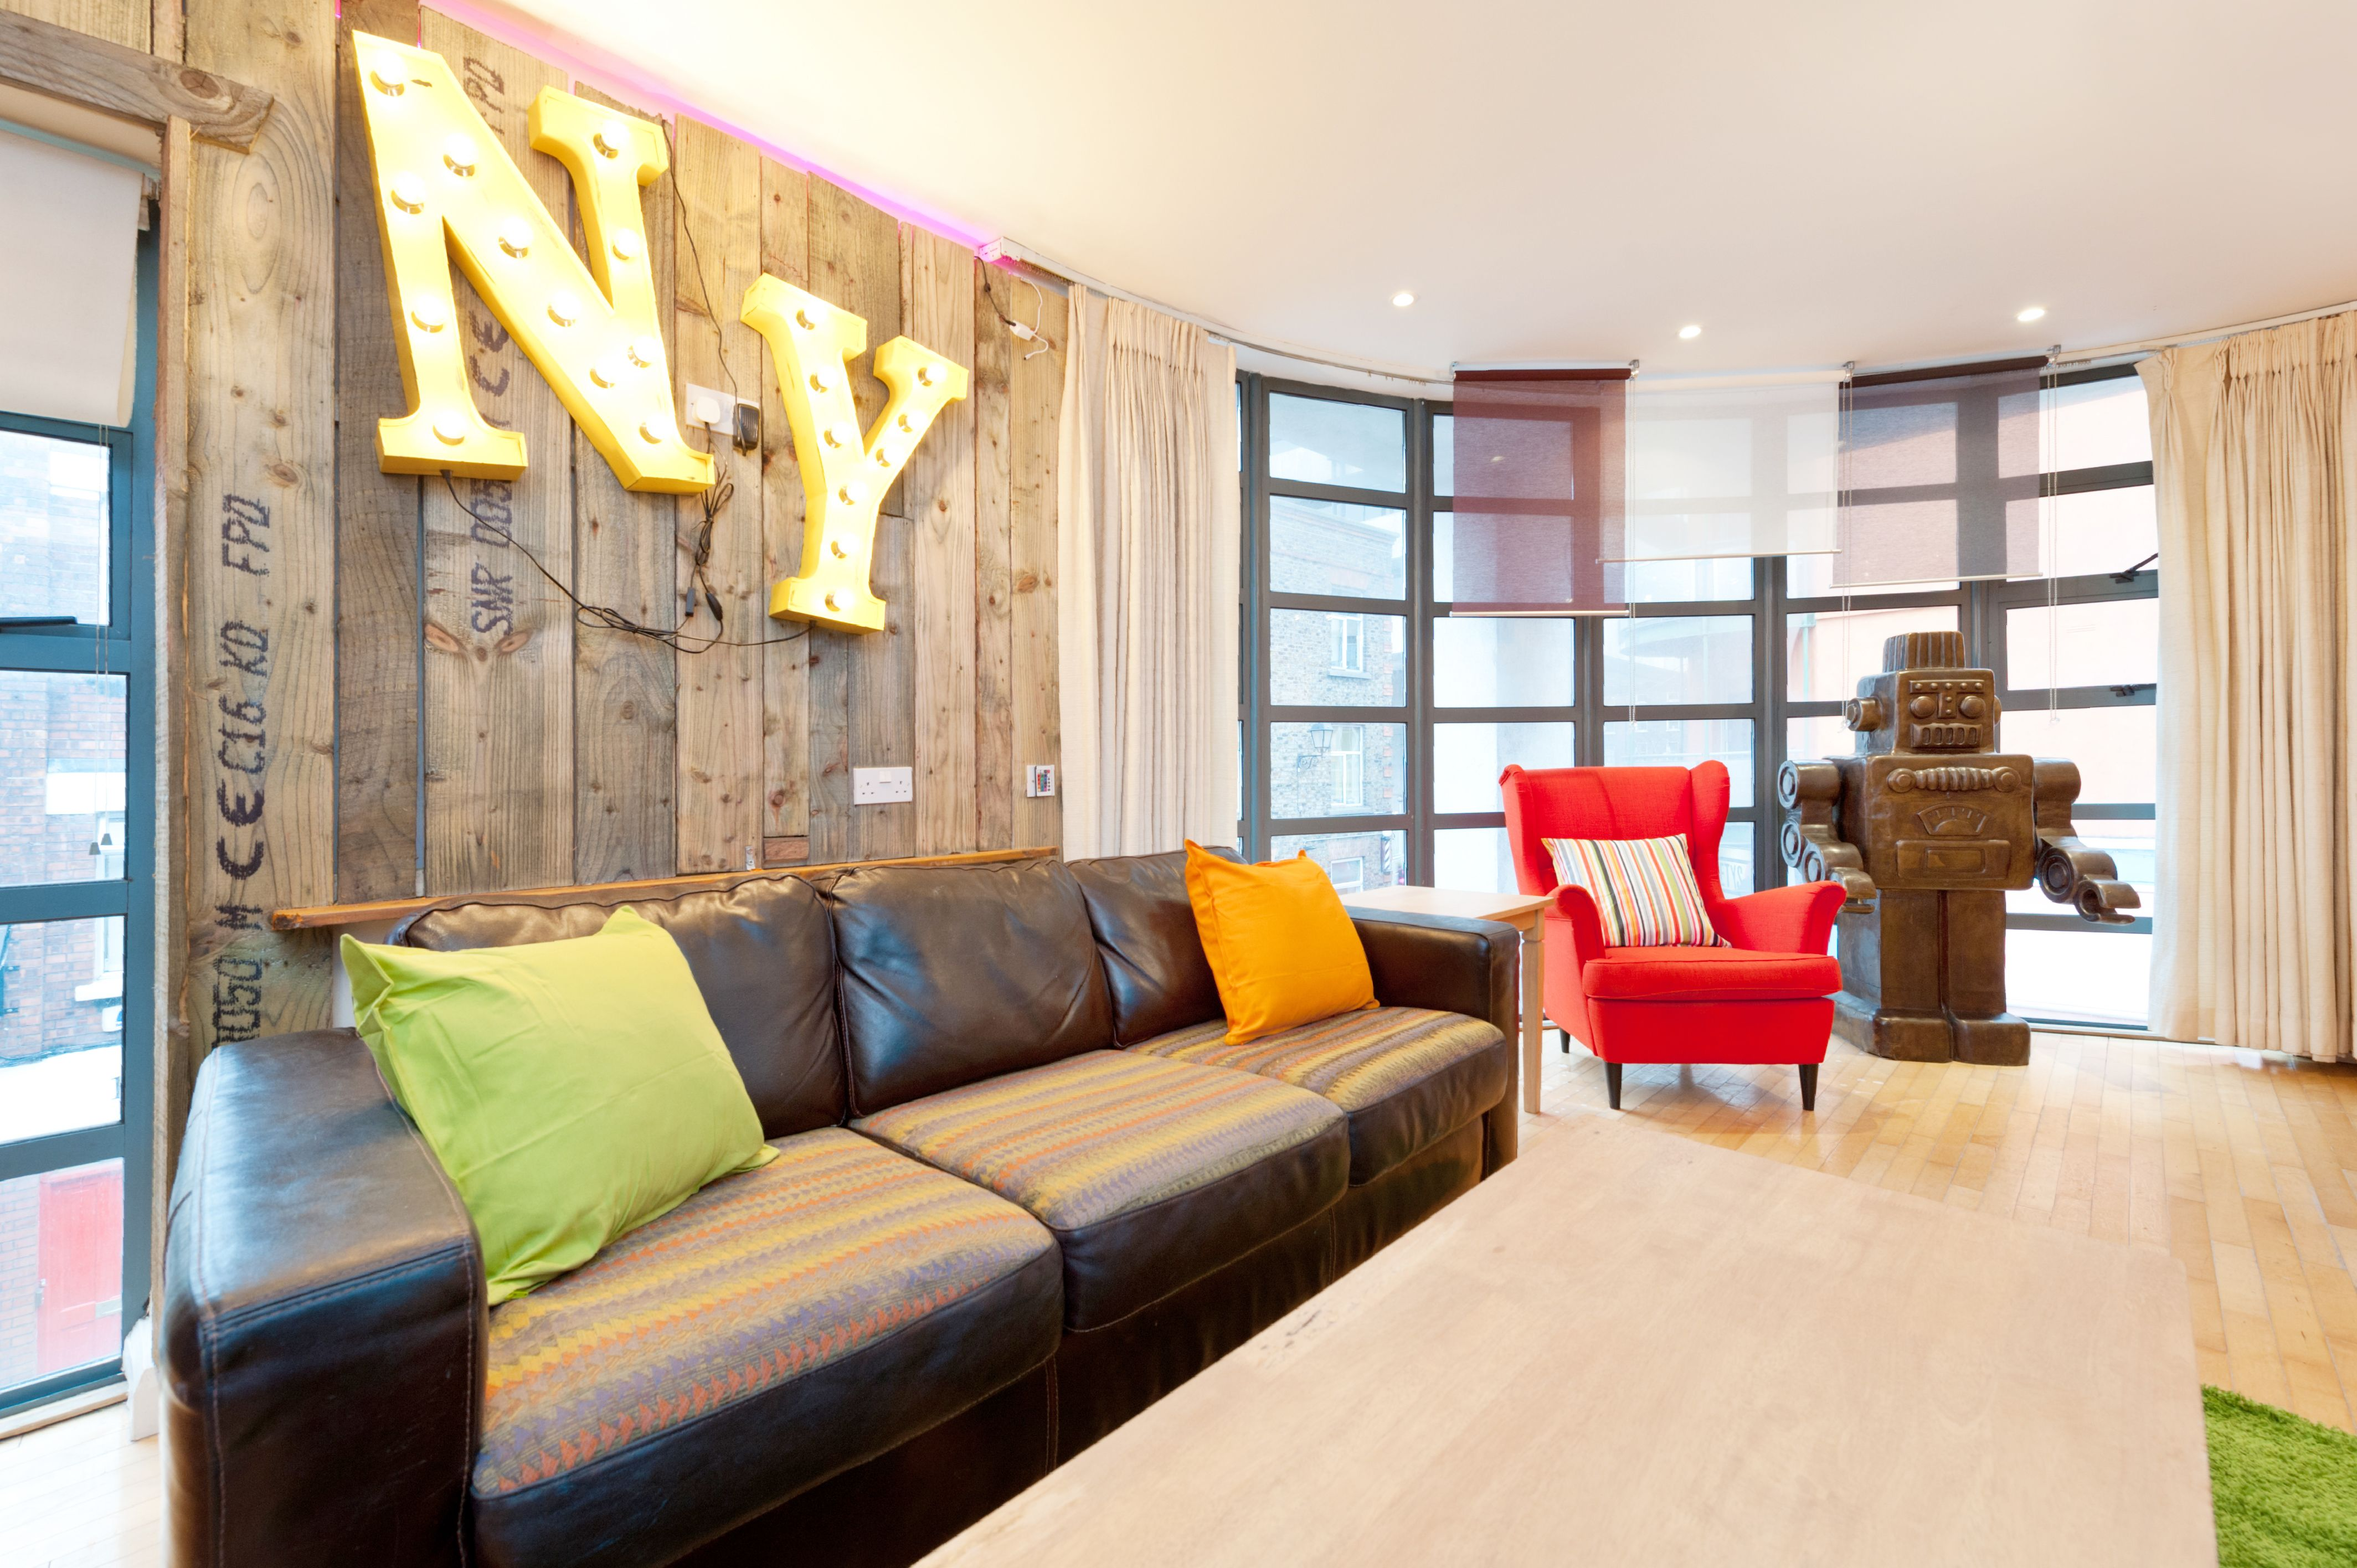 With lots of lighting and a bright sitting room, it is a